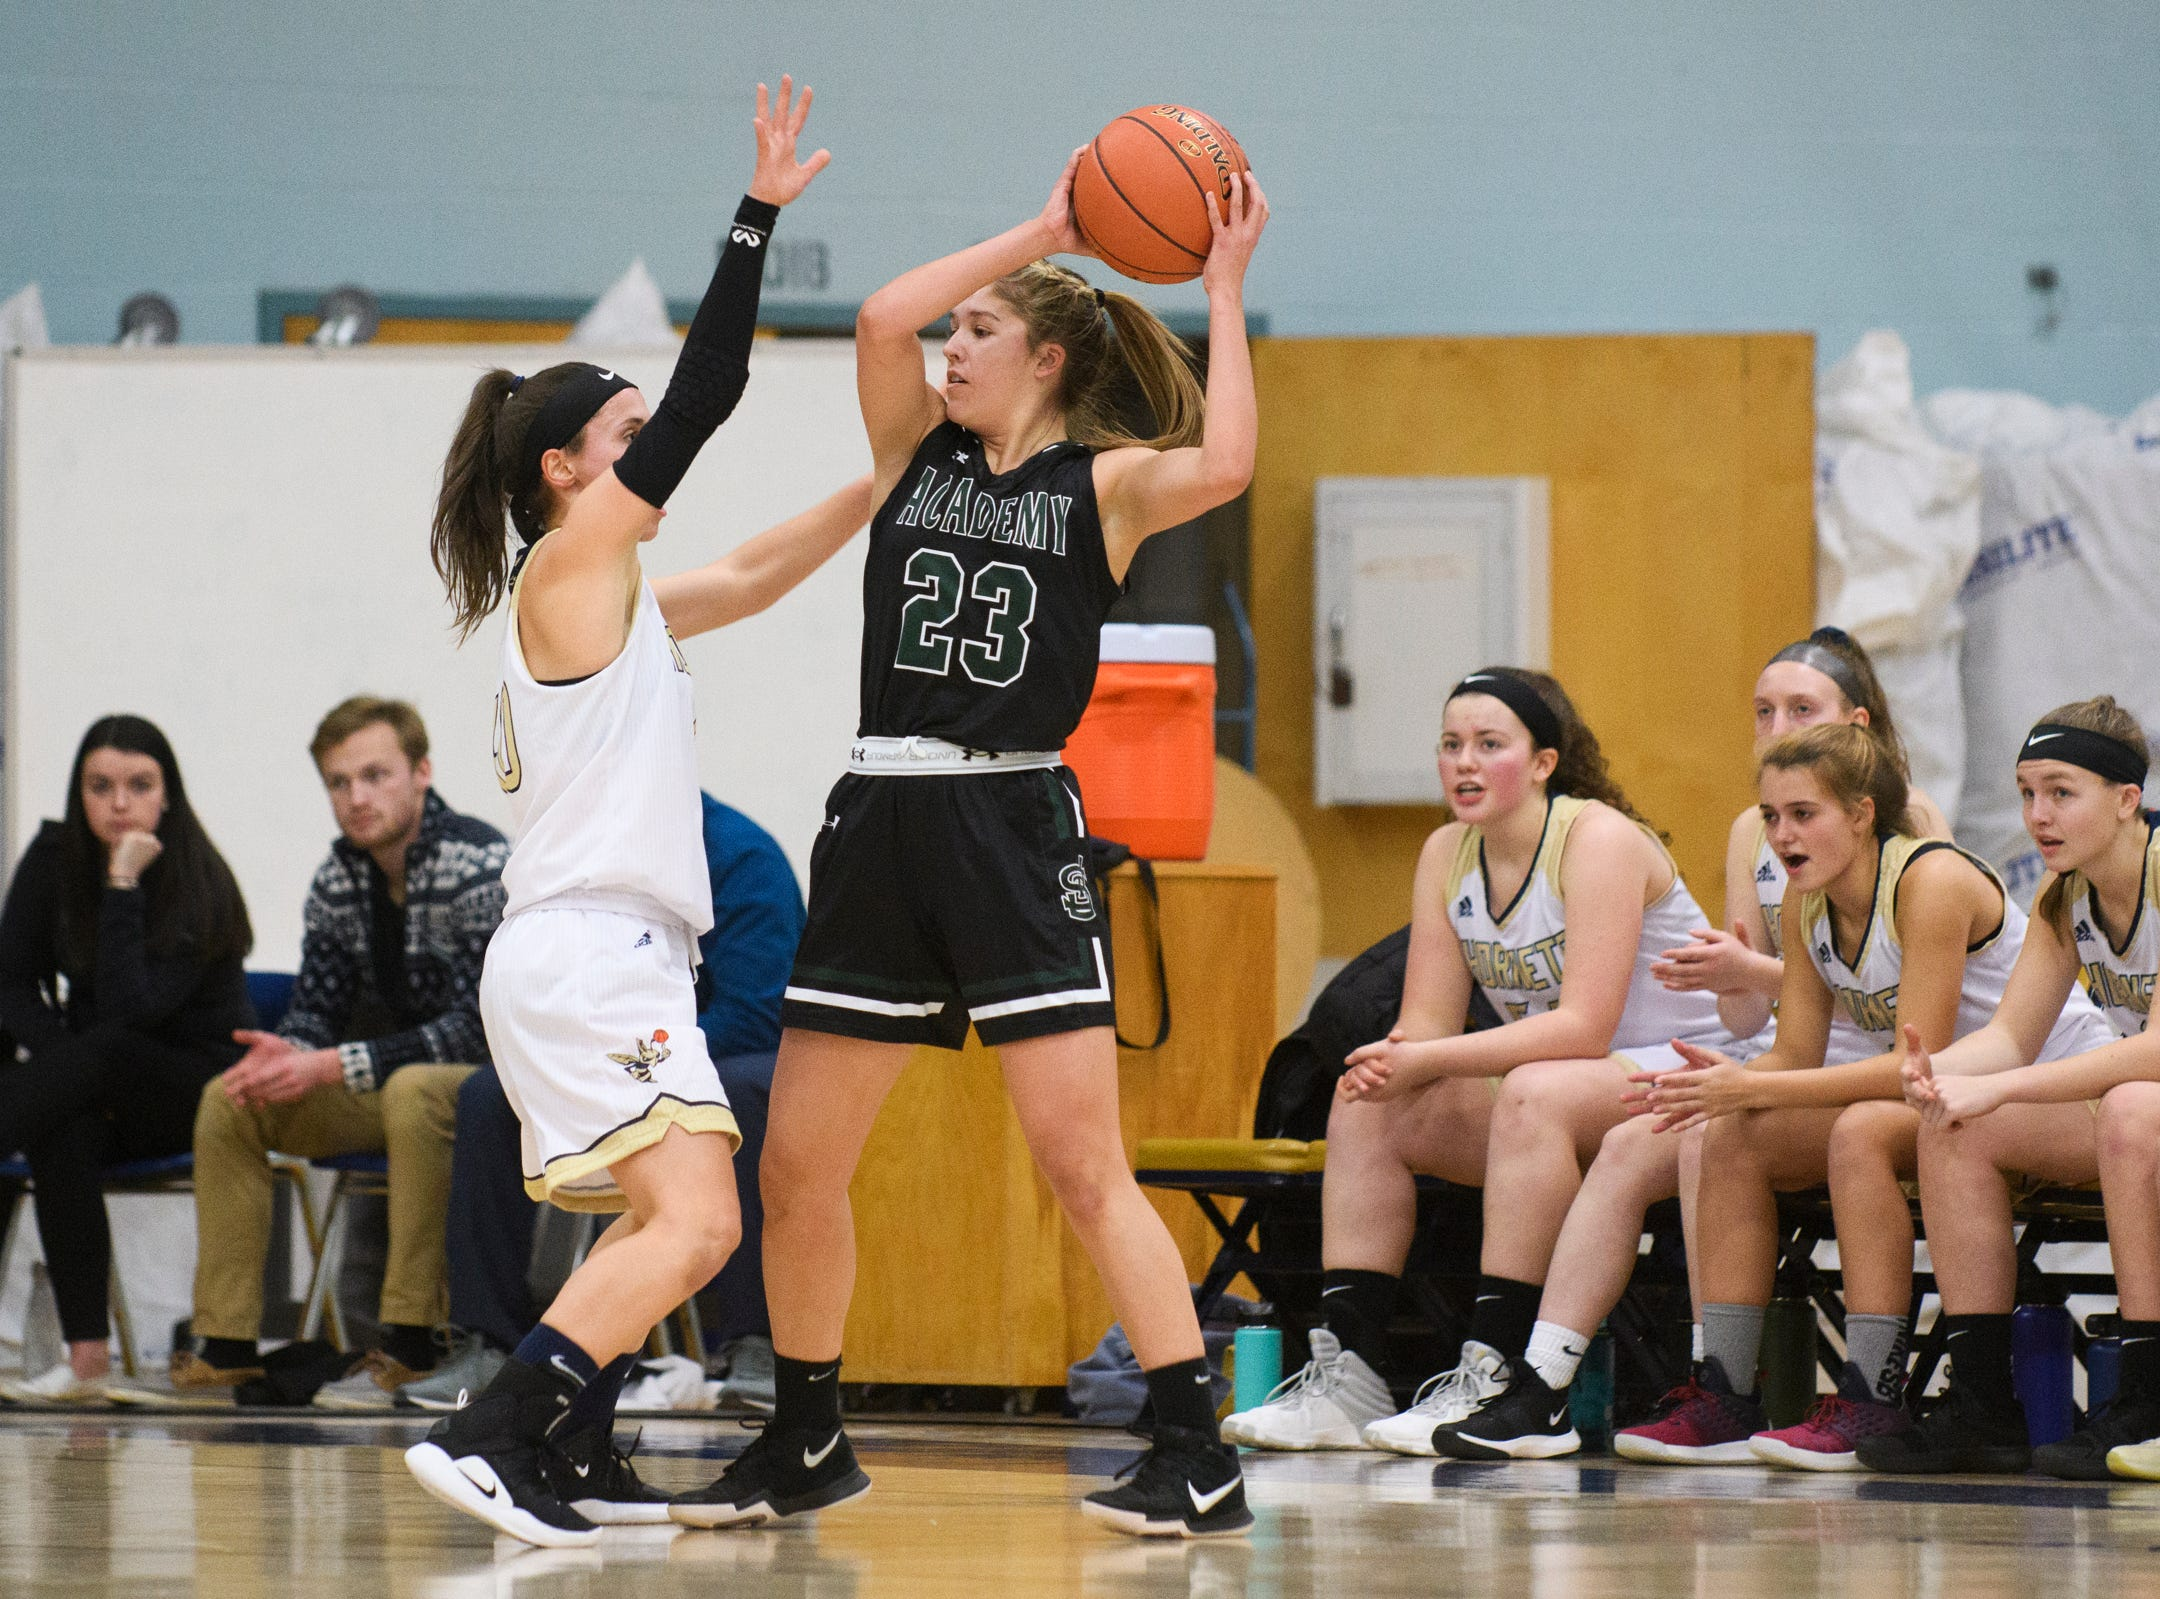 St. Johnsbury's Neva Bostic (23) looks to pass the ball as she is guarded by Essex's Adrienne Notes (10) during the girls basketball game between the St. Johnsbury Hilltoppers and the Essex Hornets at Essex High School on Thursday night January 17, 2019 in Essex.